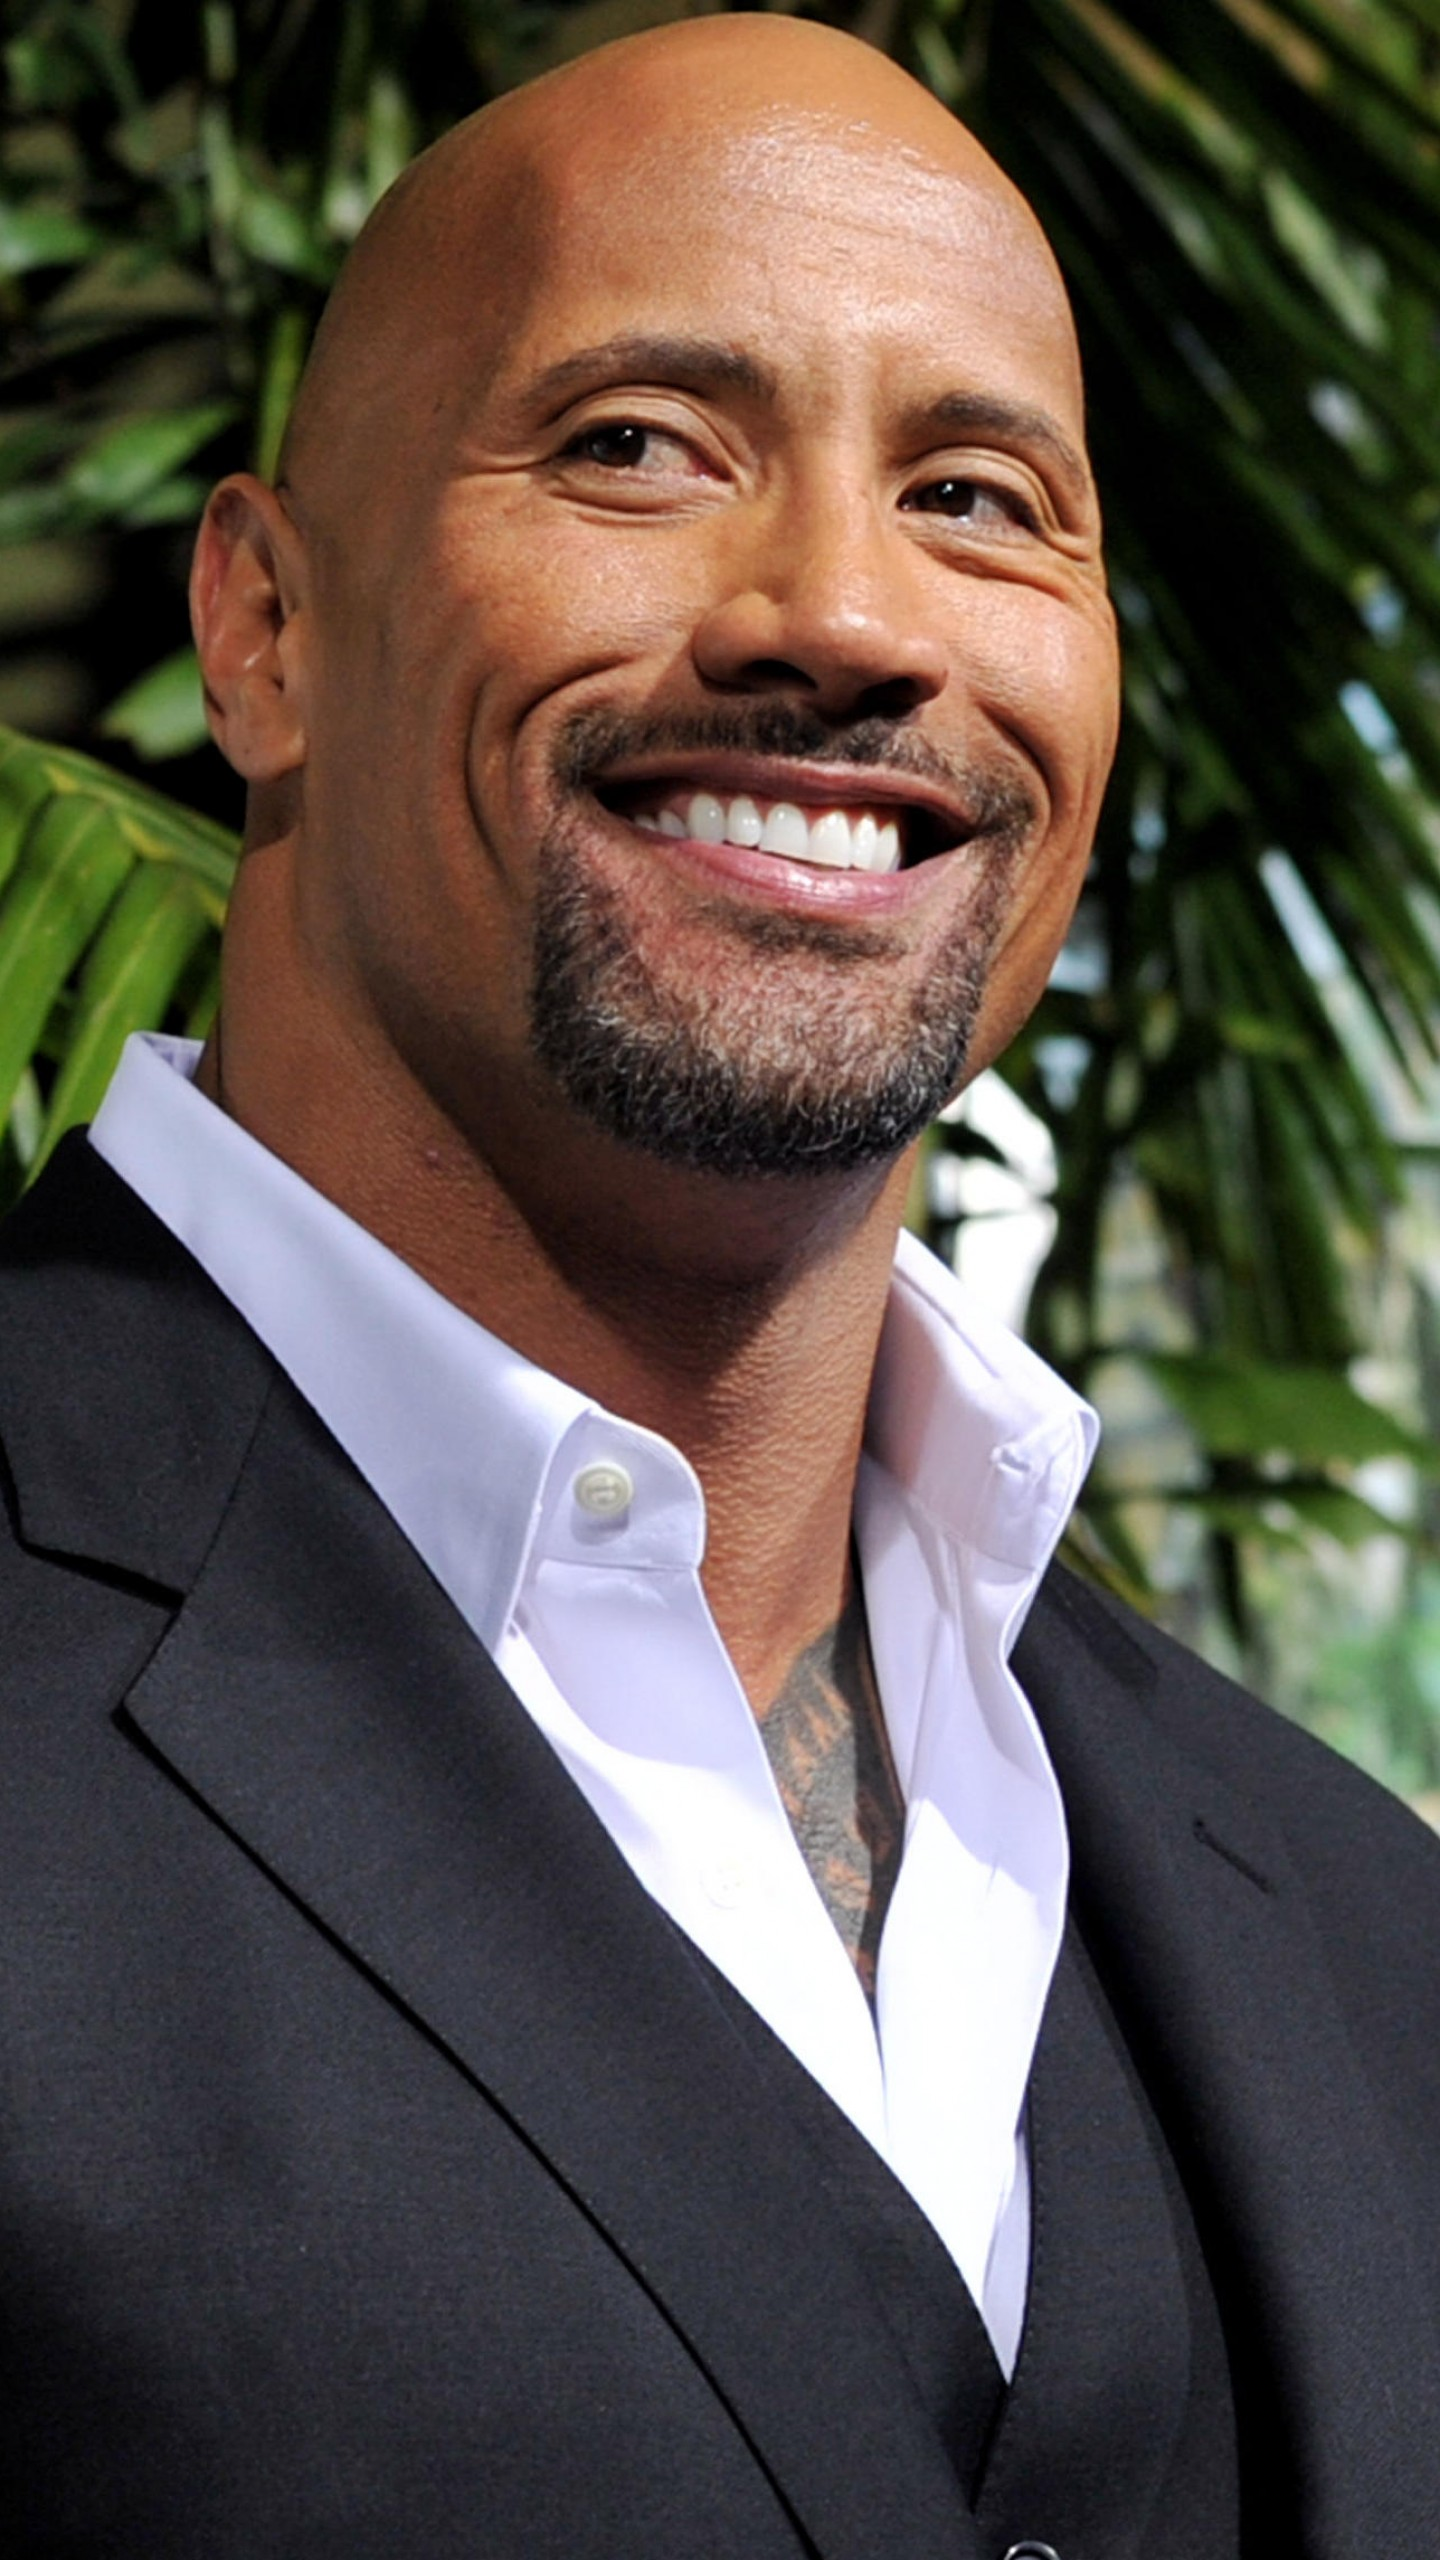 Johnson, Celebs Popular 2015 Dwayne  Most Wallpaper in